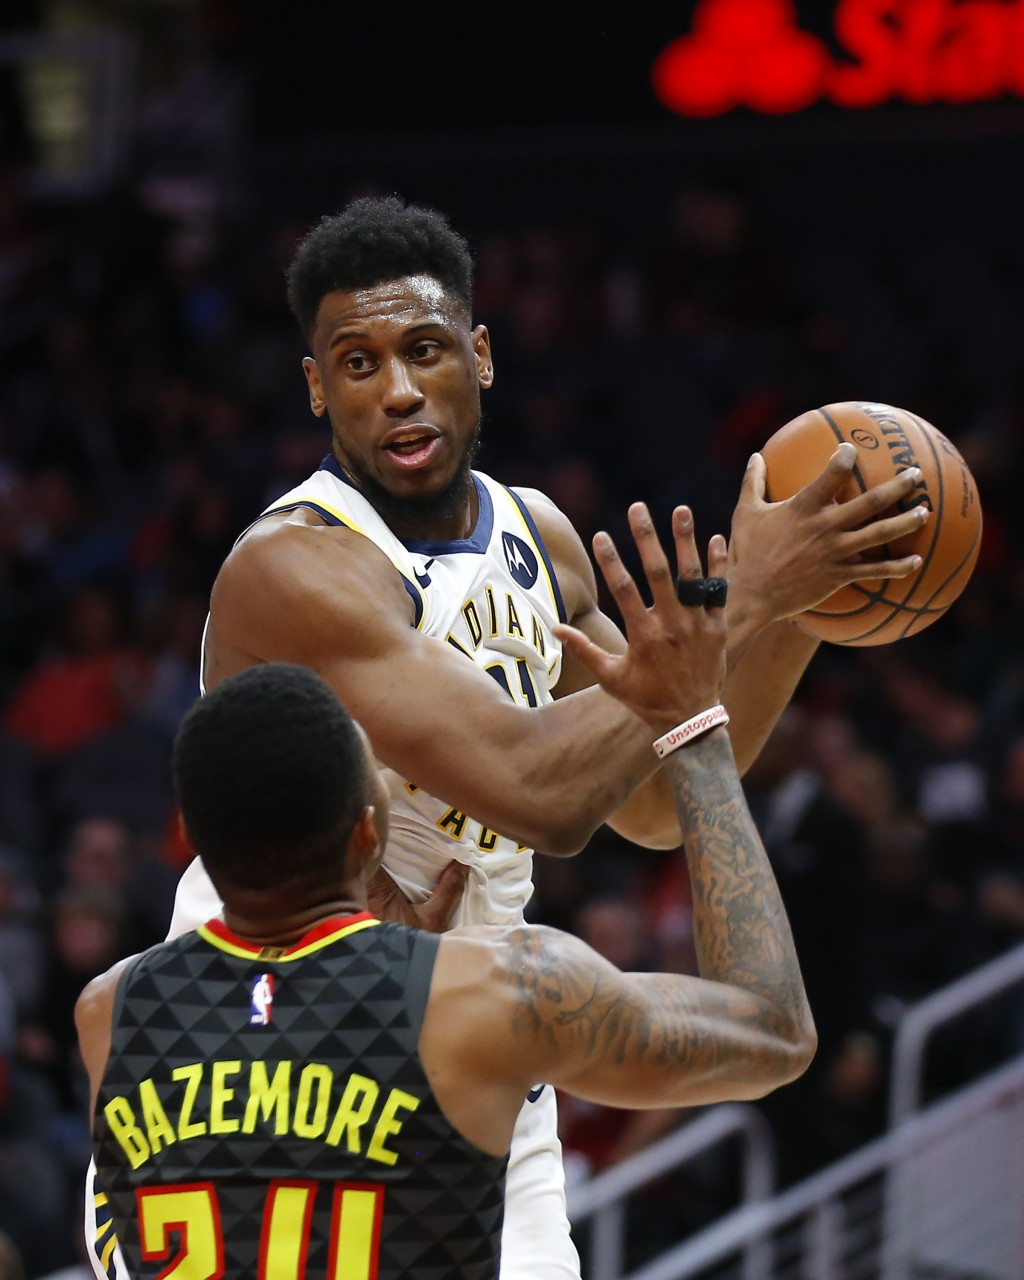 Indiana Pacers forward Thaddeus Young (21) is defended by Atlanta Hawks guard Kent Bazemore (24) during the second half of an NBA basketball game Wedn...